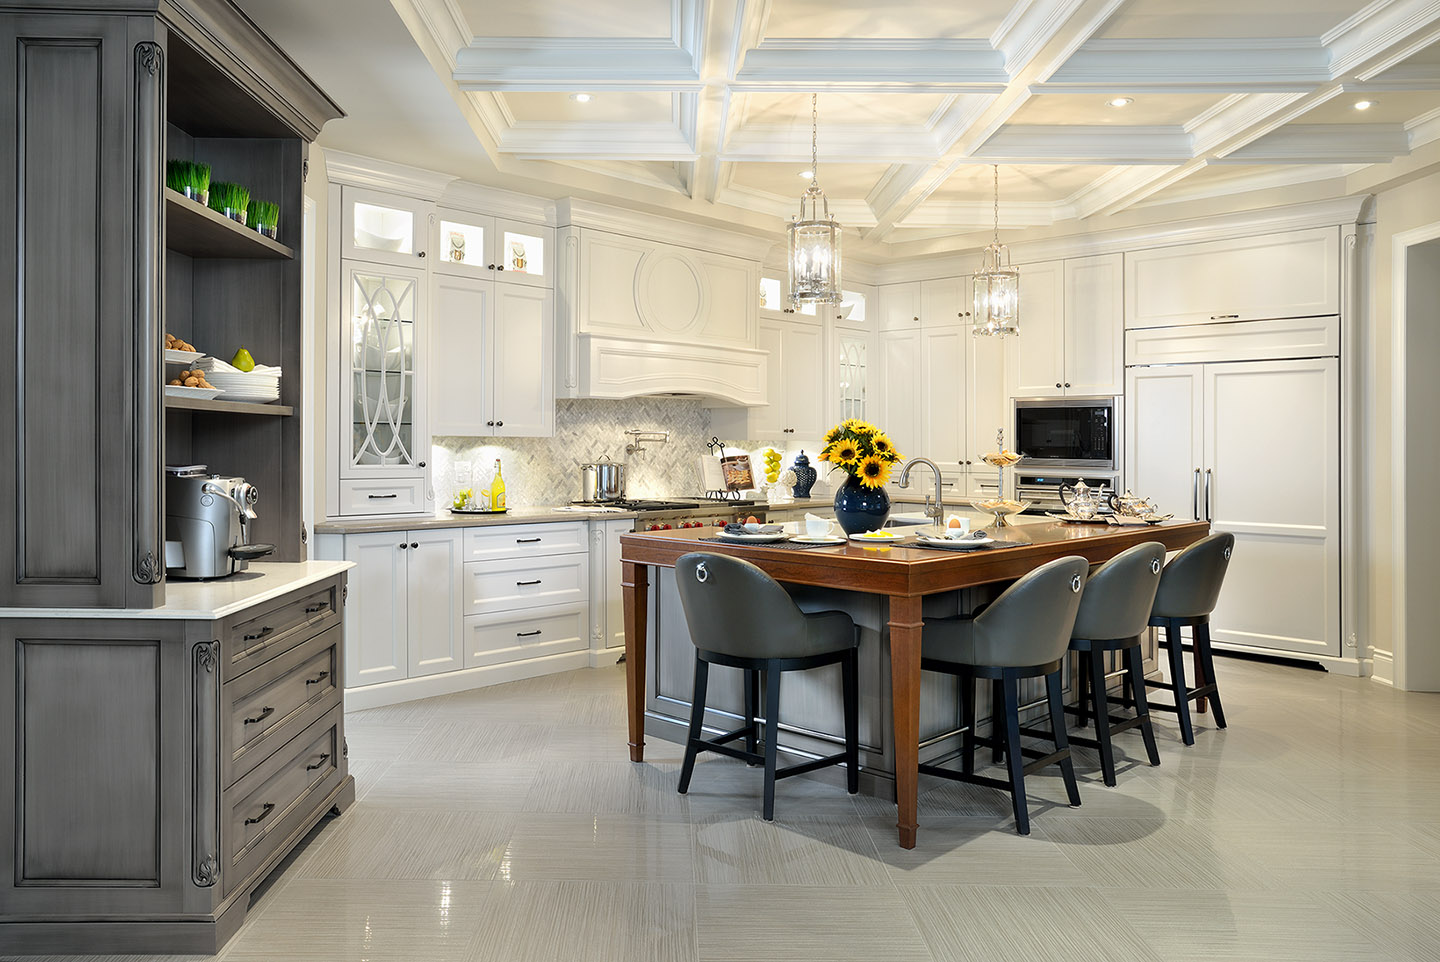 Ridgewood estates model home erindale painting for Model kitchens with white cabinets